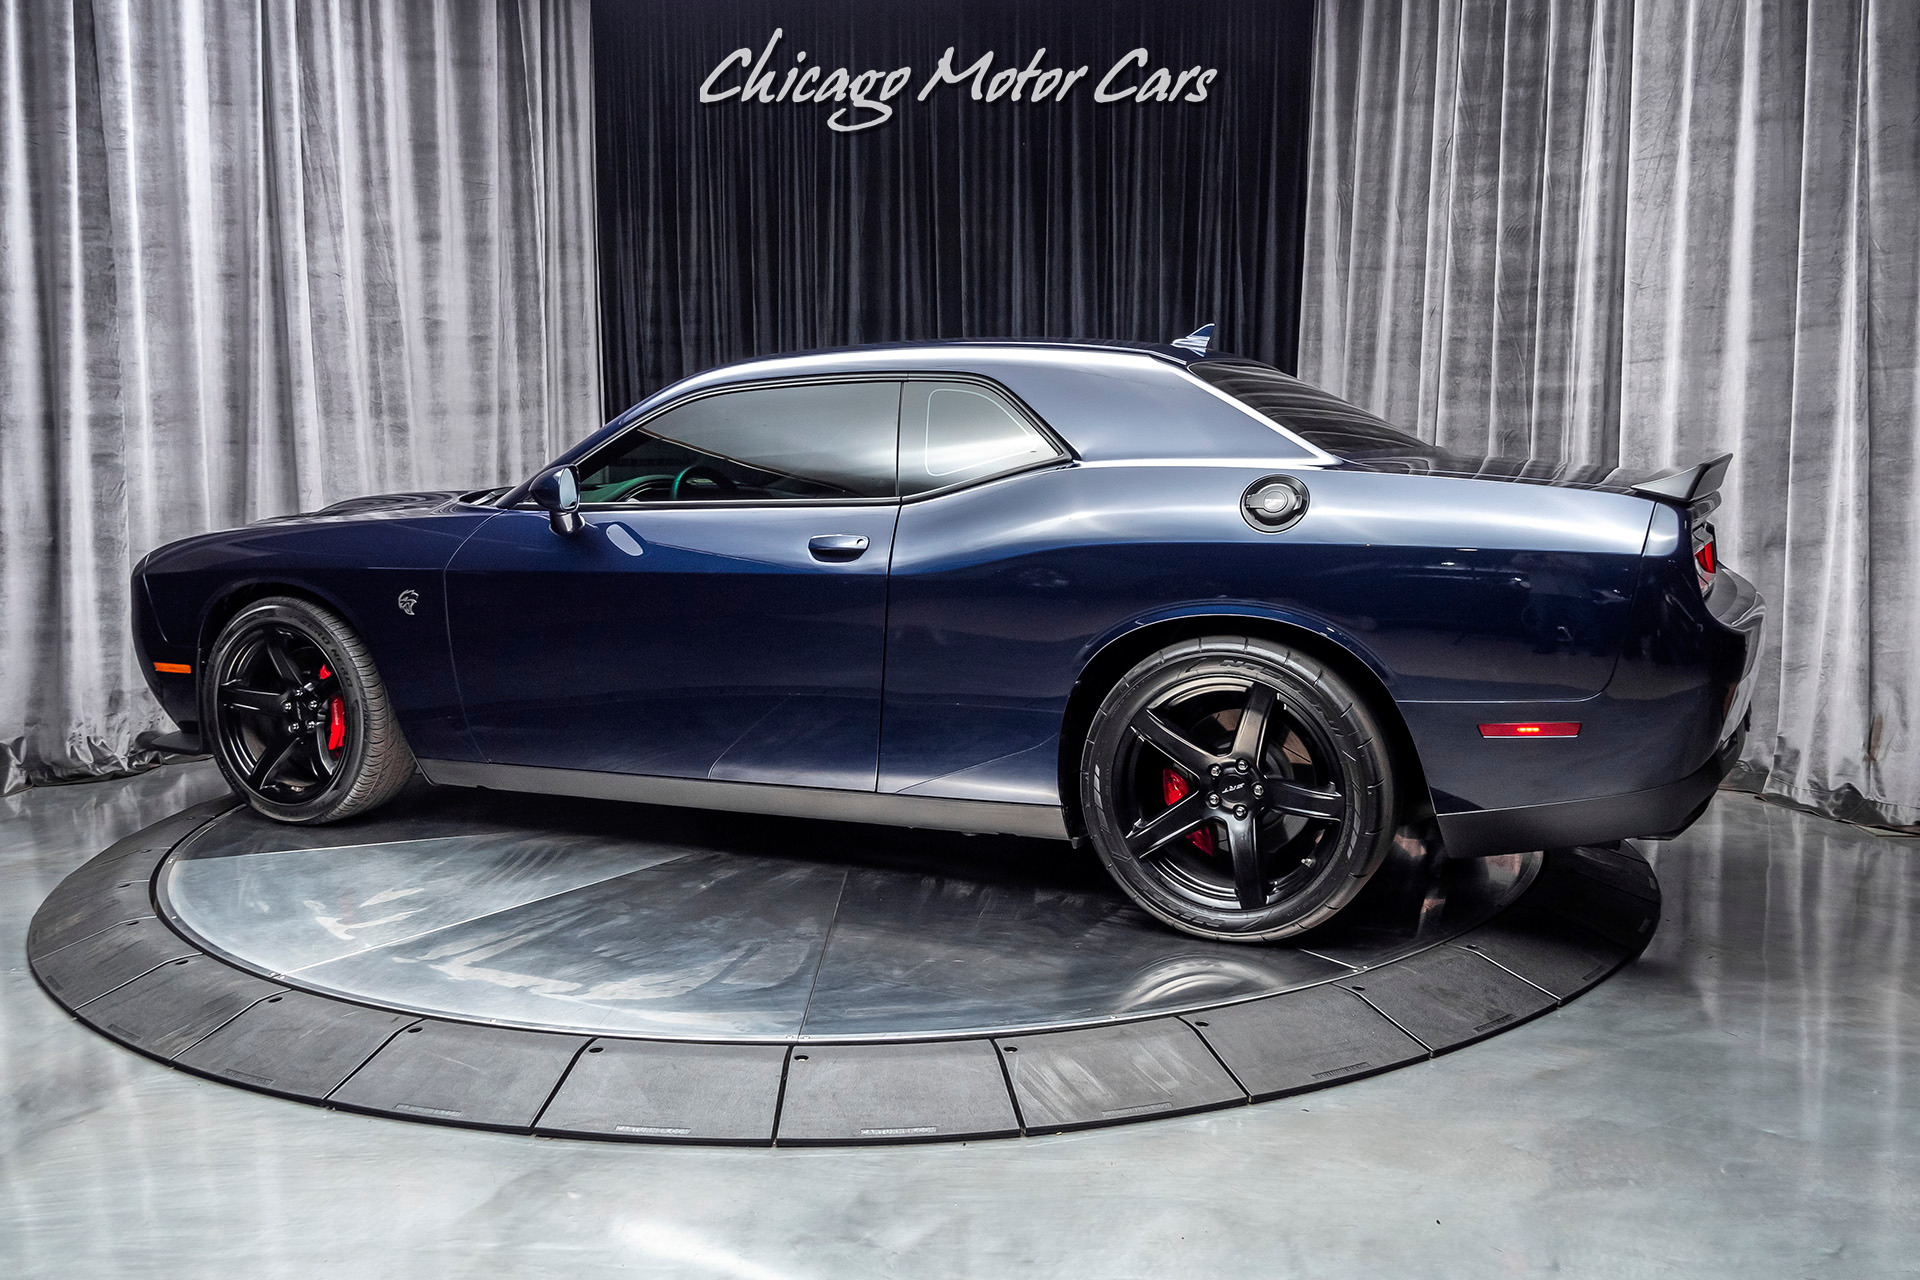 Used-2016-Dodge-Challenger-SRT-Hellcat-Coupe-16K-MILES-BUILT-BY-BARTH-TUNING-900WHP